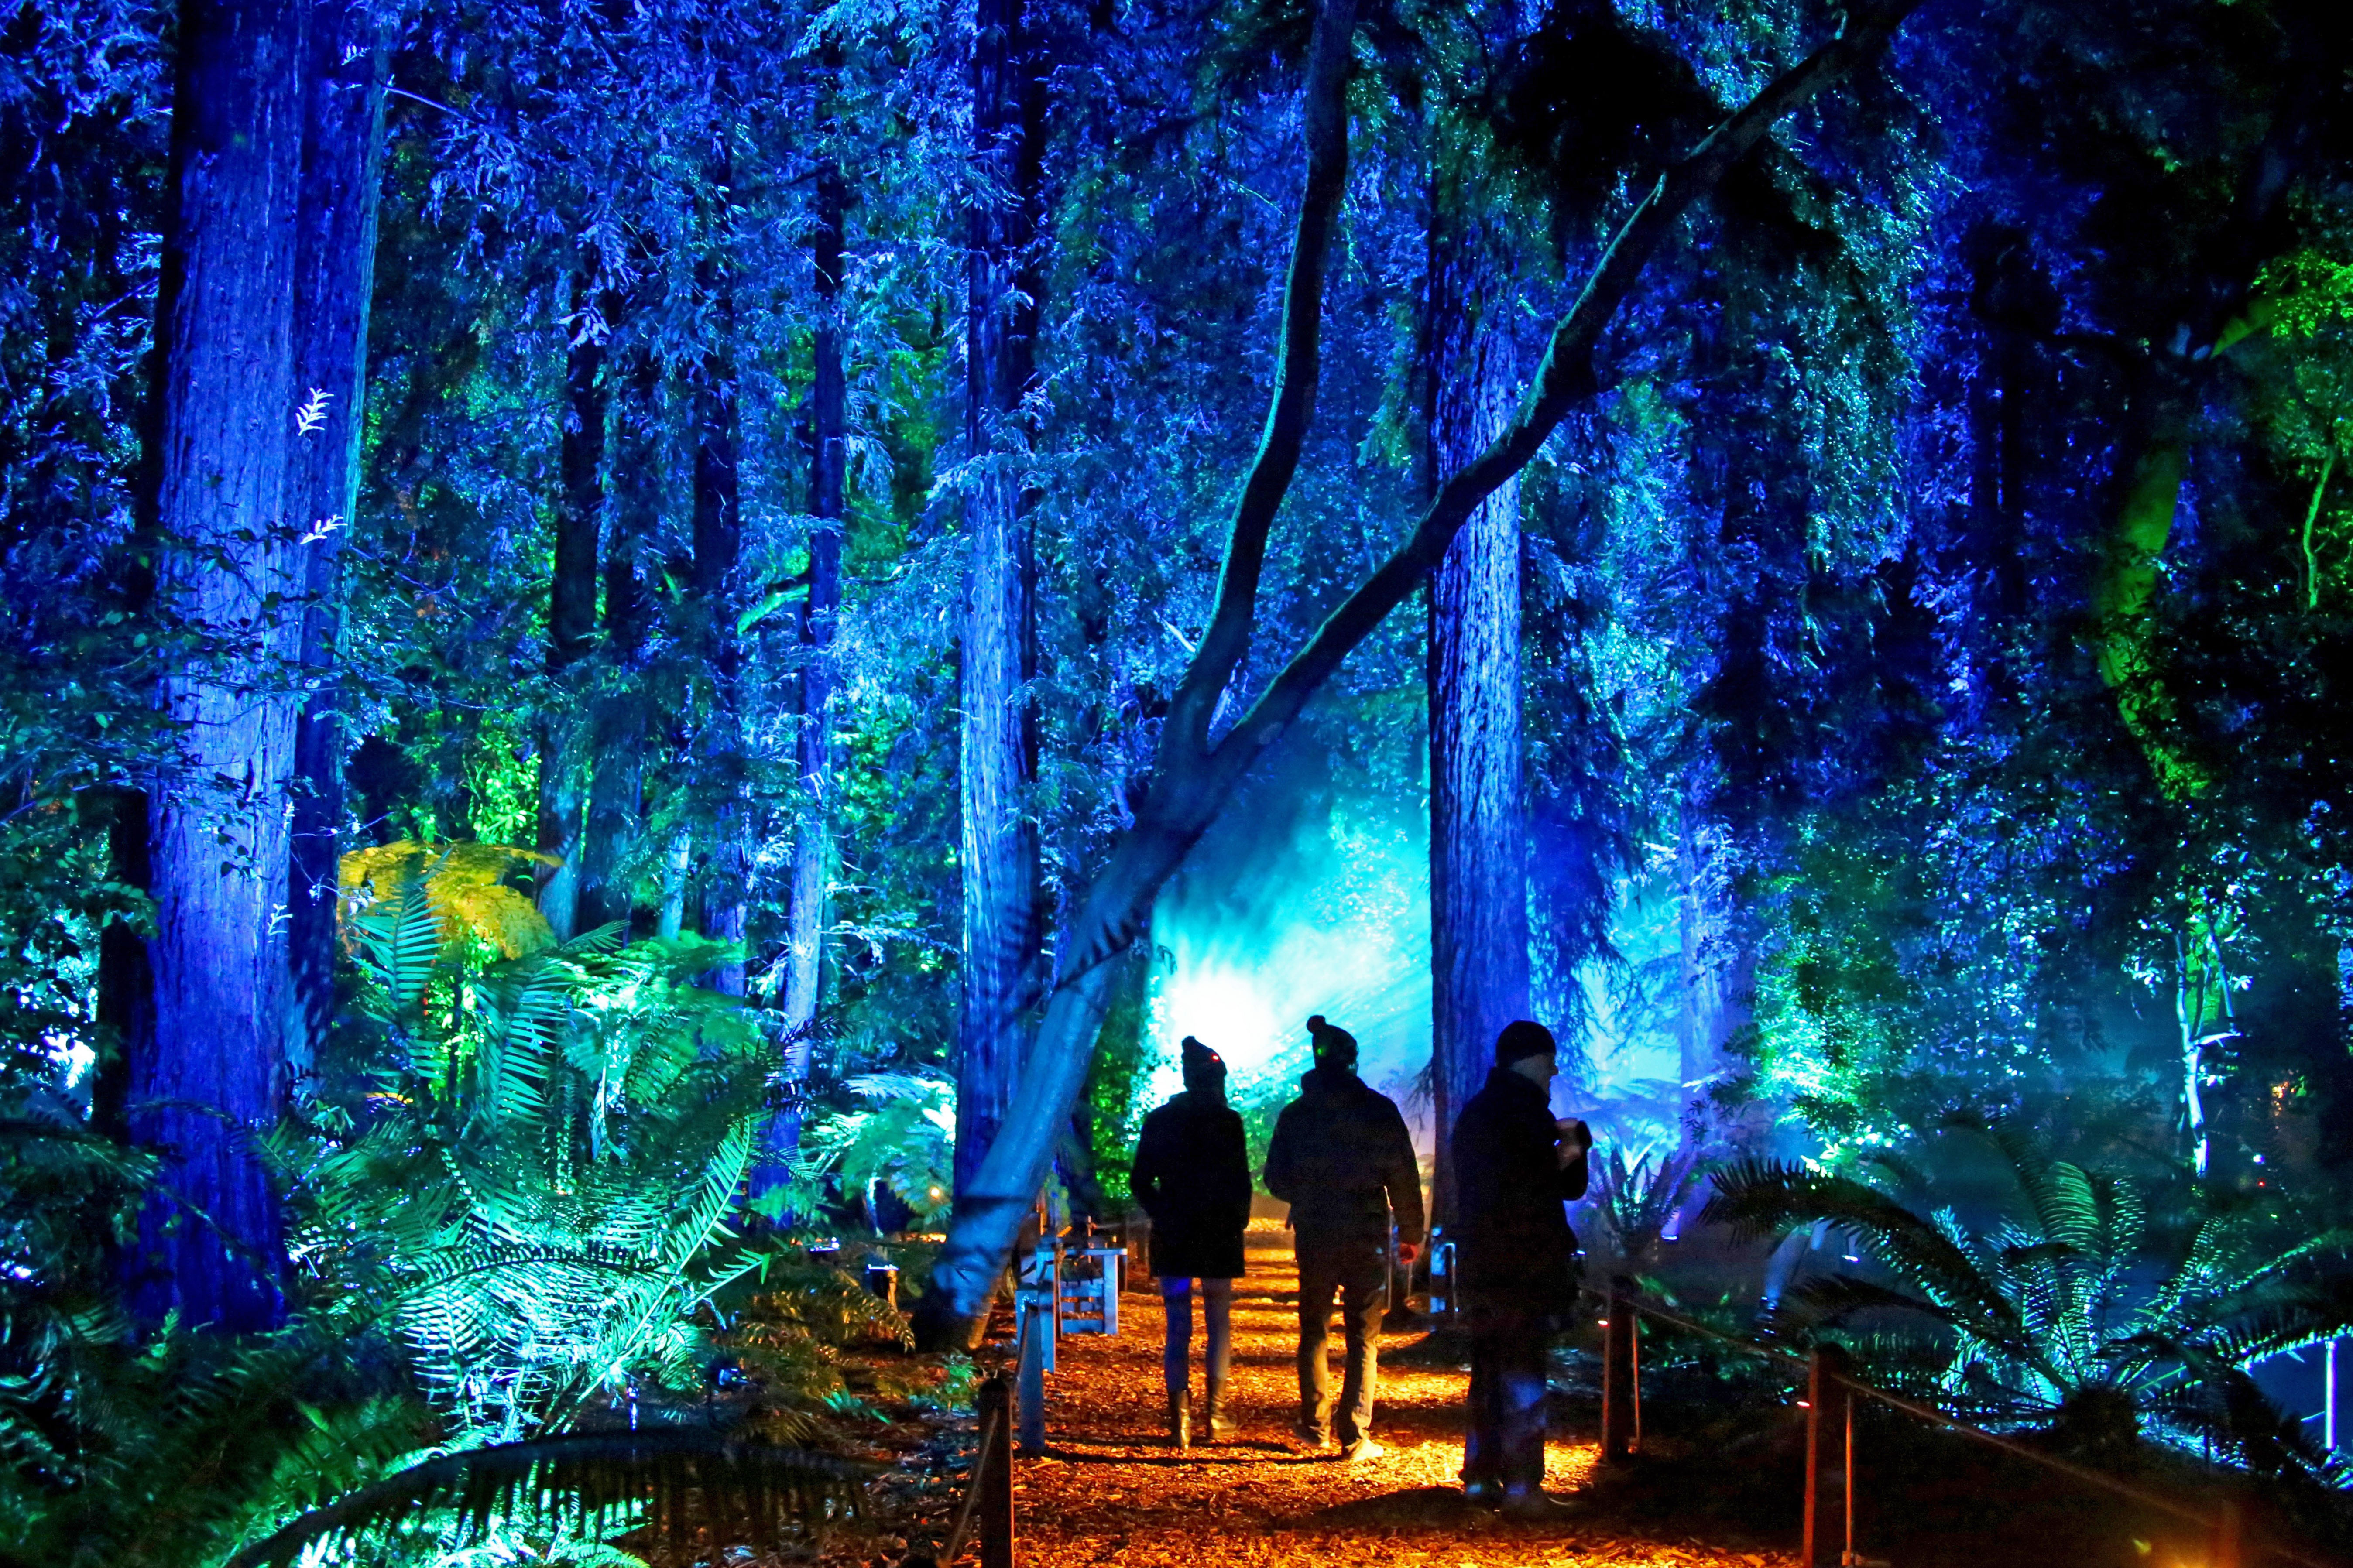 Enchanted Forest of Light